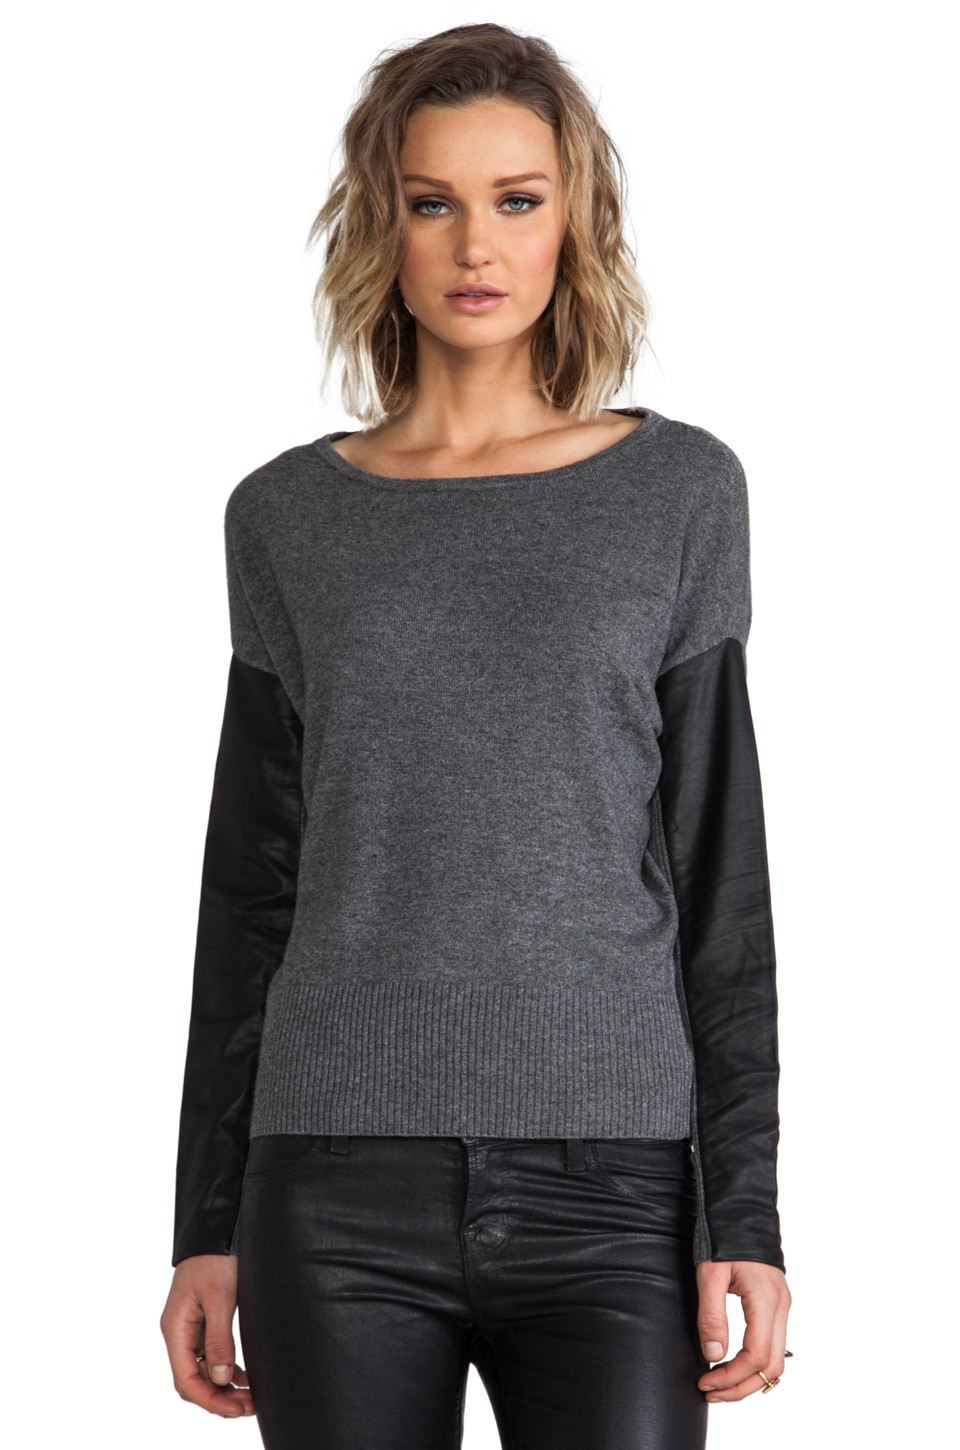 Michael Stars Cashmere Blend Leather Sleeve Dolman Boatneck Pullover inHeather Grey/Black